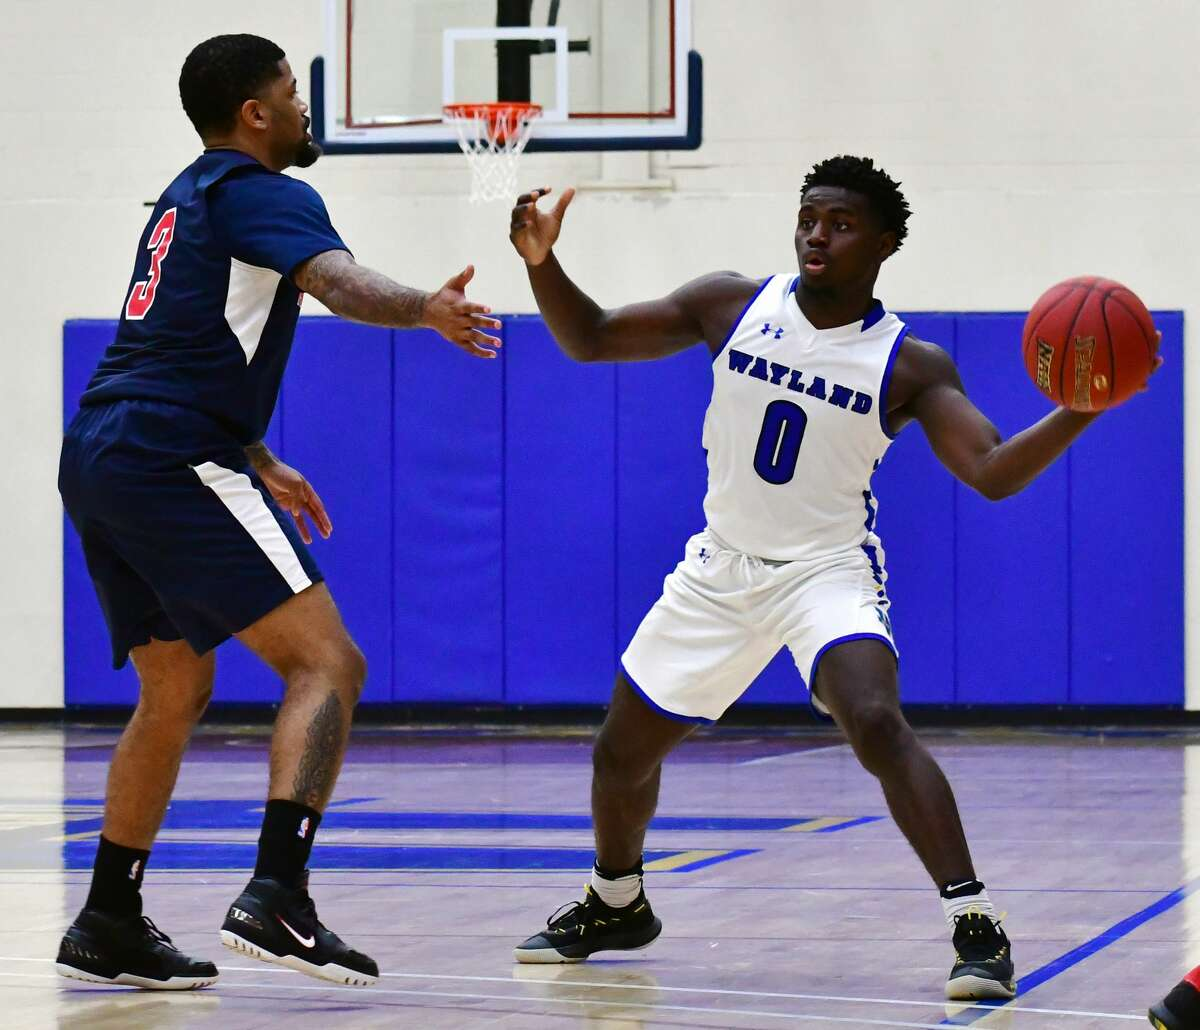 Wayland Baptist rolled past Arlington Baptist 96-52 to open the men's college basketball season on Friday afternoon, Oct. 30, 2020 in the Hutcherson Center.